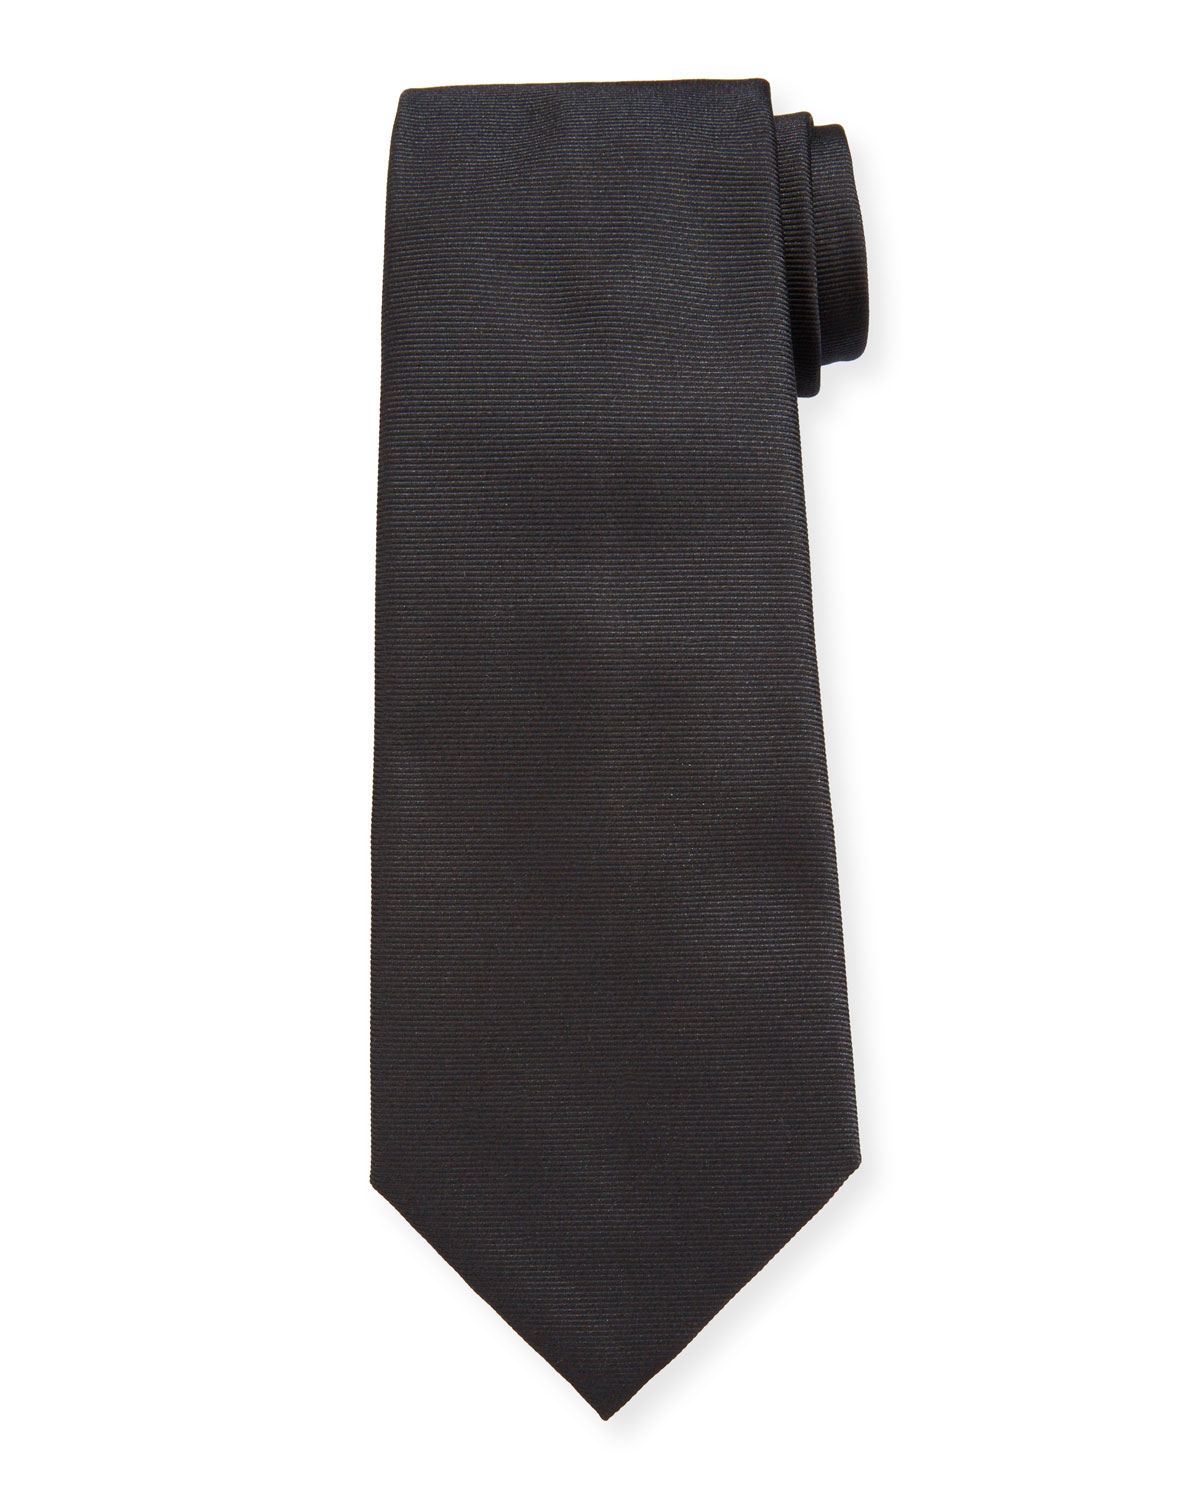 Ermenegildo Zegna Men's Solid Ribbed Silk Tie